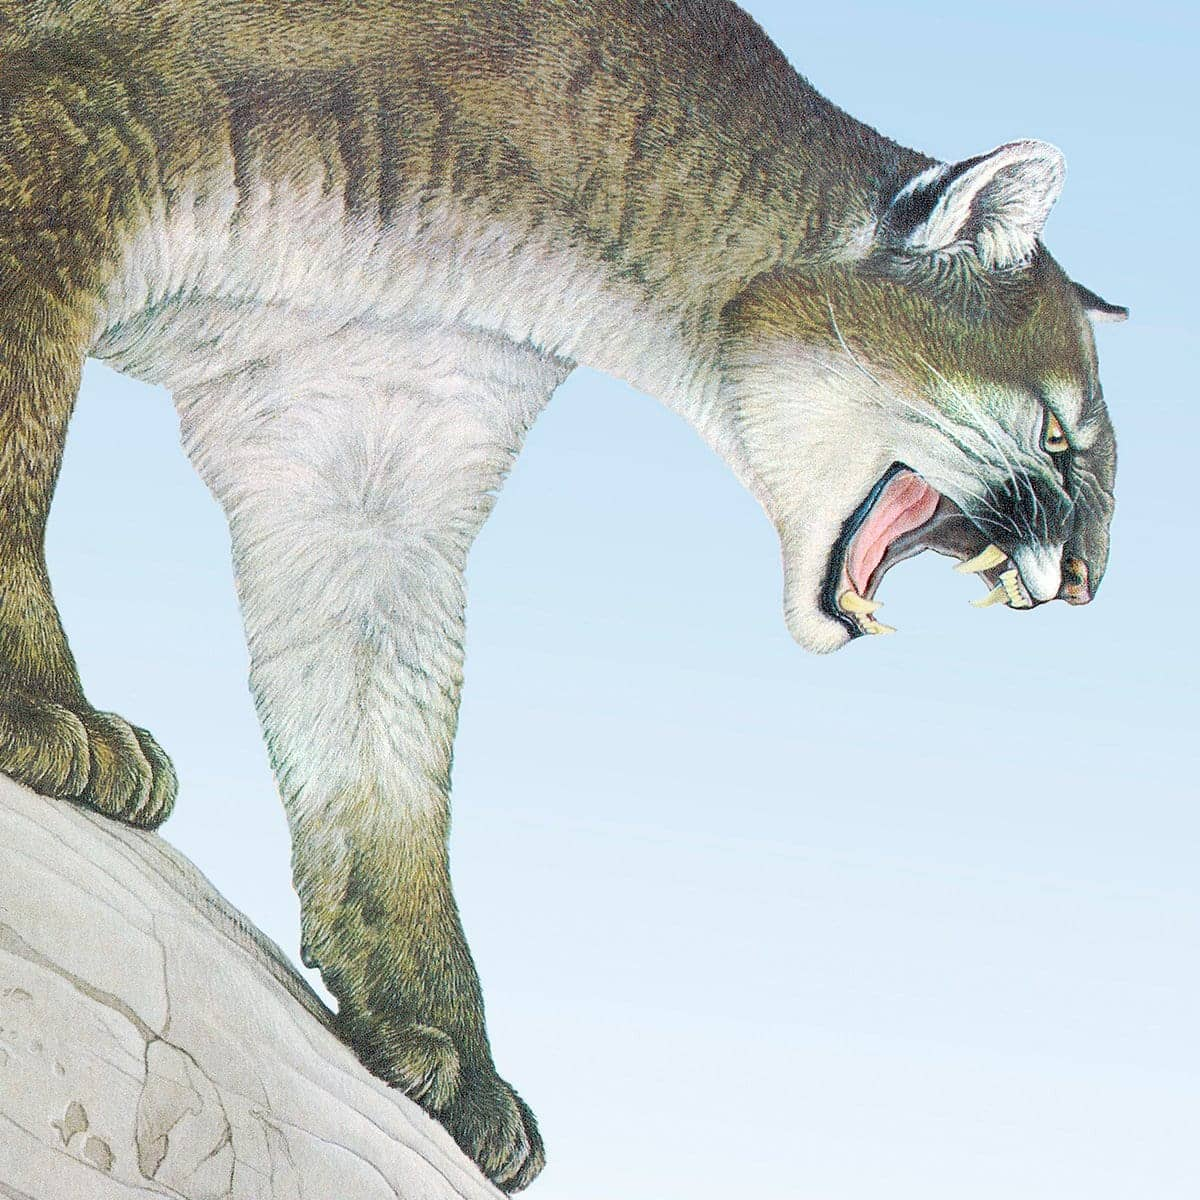 Cougar - Art Print by Glen Loates from the Glen Loates Store